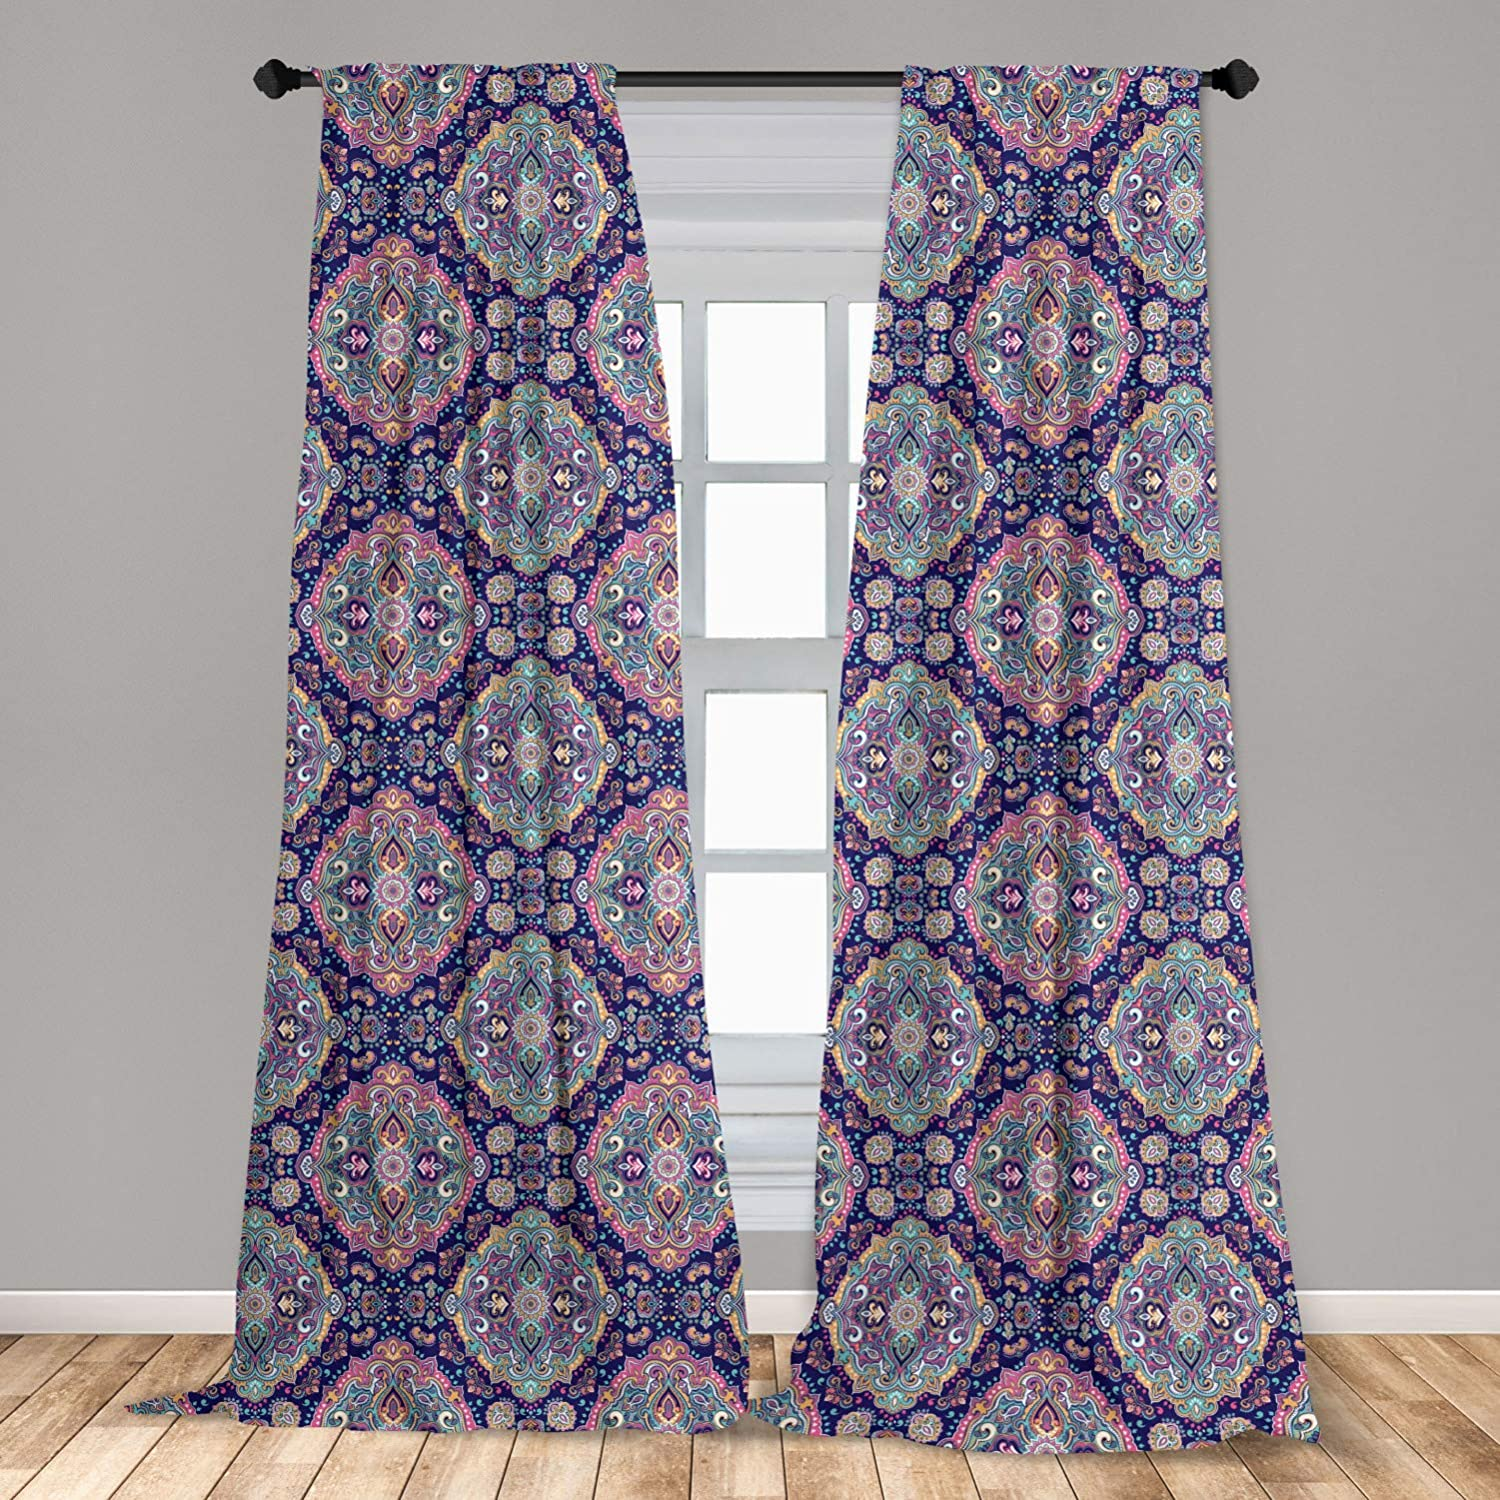 """Ambesonne Ethnic Curtains, Boho Style Mandala Colorful Spring Garden Themed Old Fashioned Tile, Window Treatments 2 Panel Set for Living Room Bedroom Decor, 56"""" x 84"""", Navy Pink"""